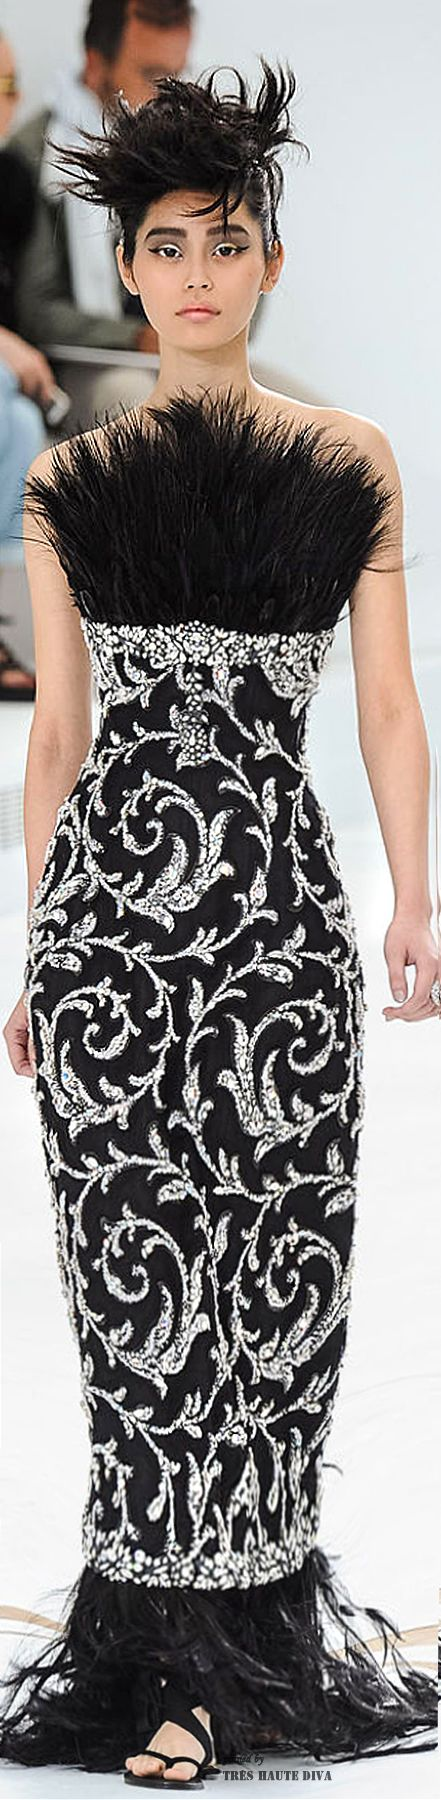 The dress is chanel - Chanel Haute Couture Fall 2014 The House Of Beccaria